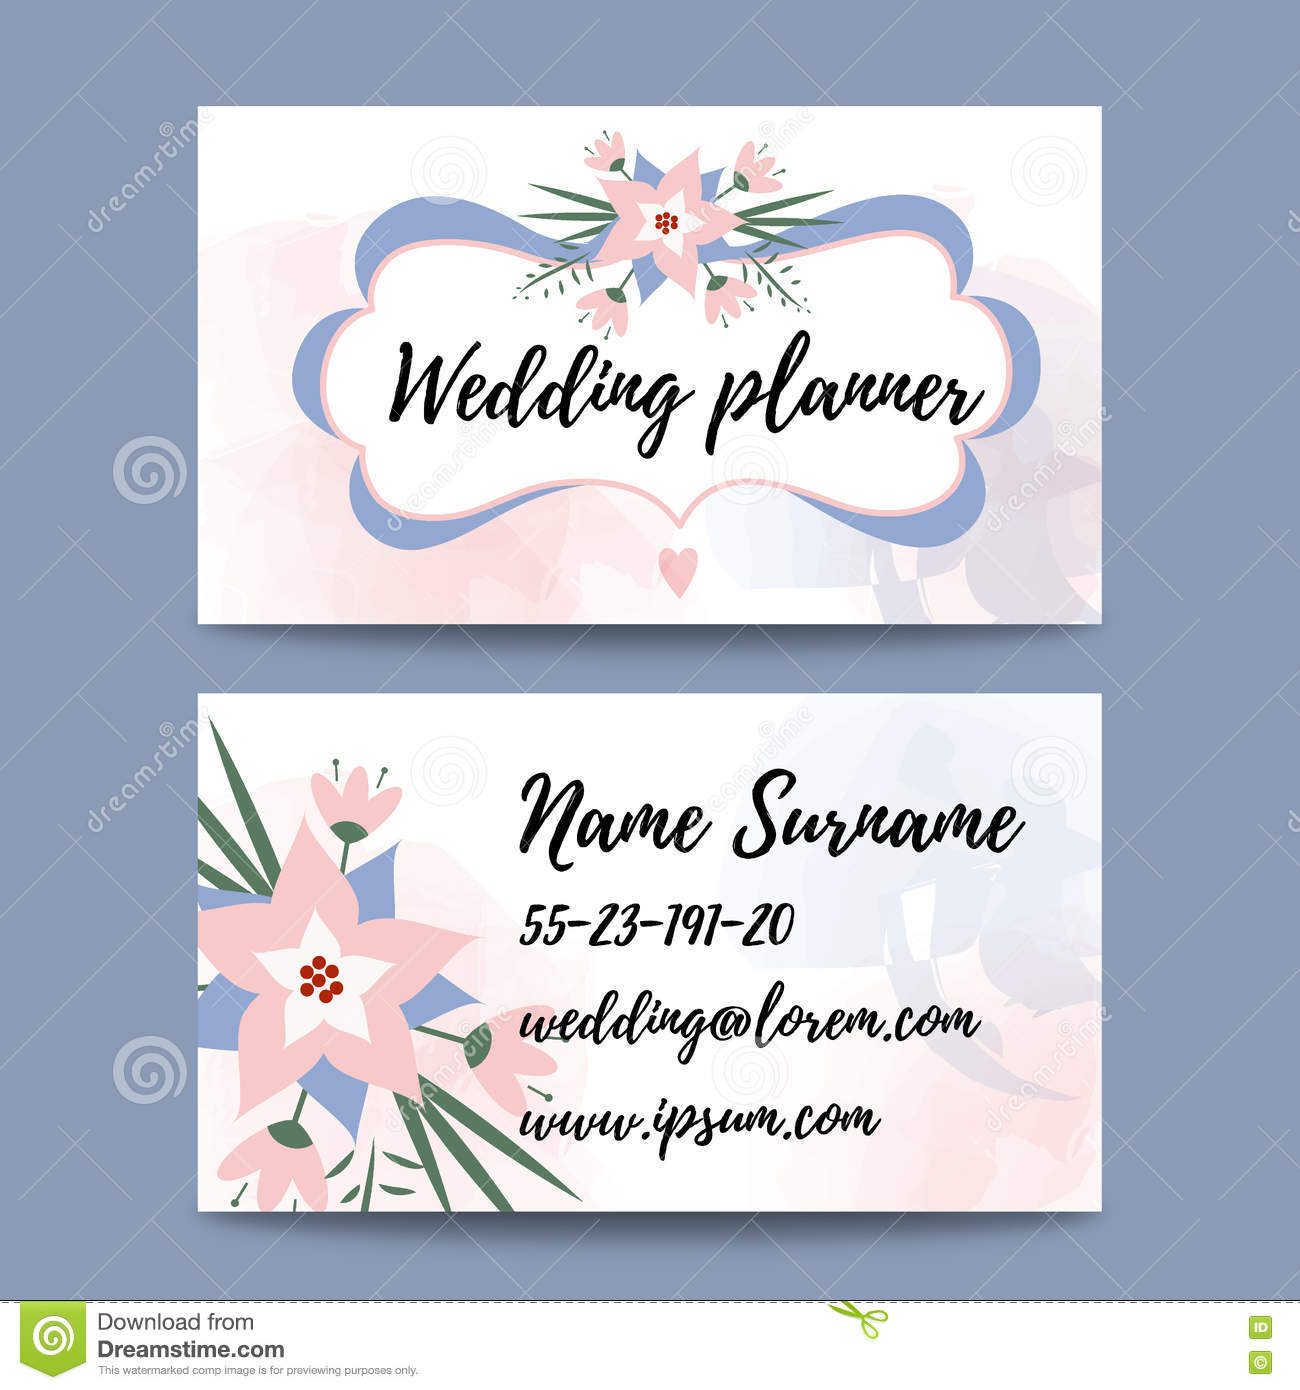 Vector pastel feminine business card template mockup with logo download vector pastel feminine business card template mockup with logo flower suitable for wedding planners fbccfo Choice Image